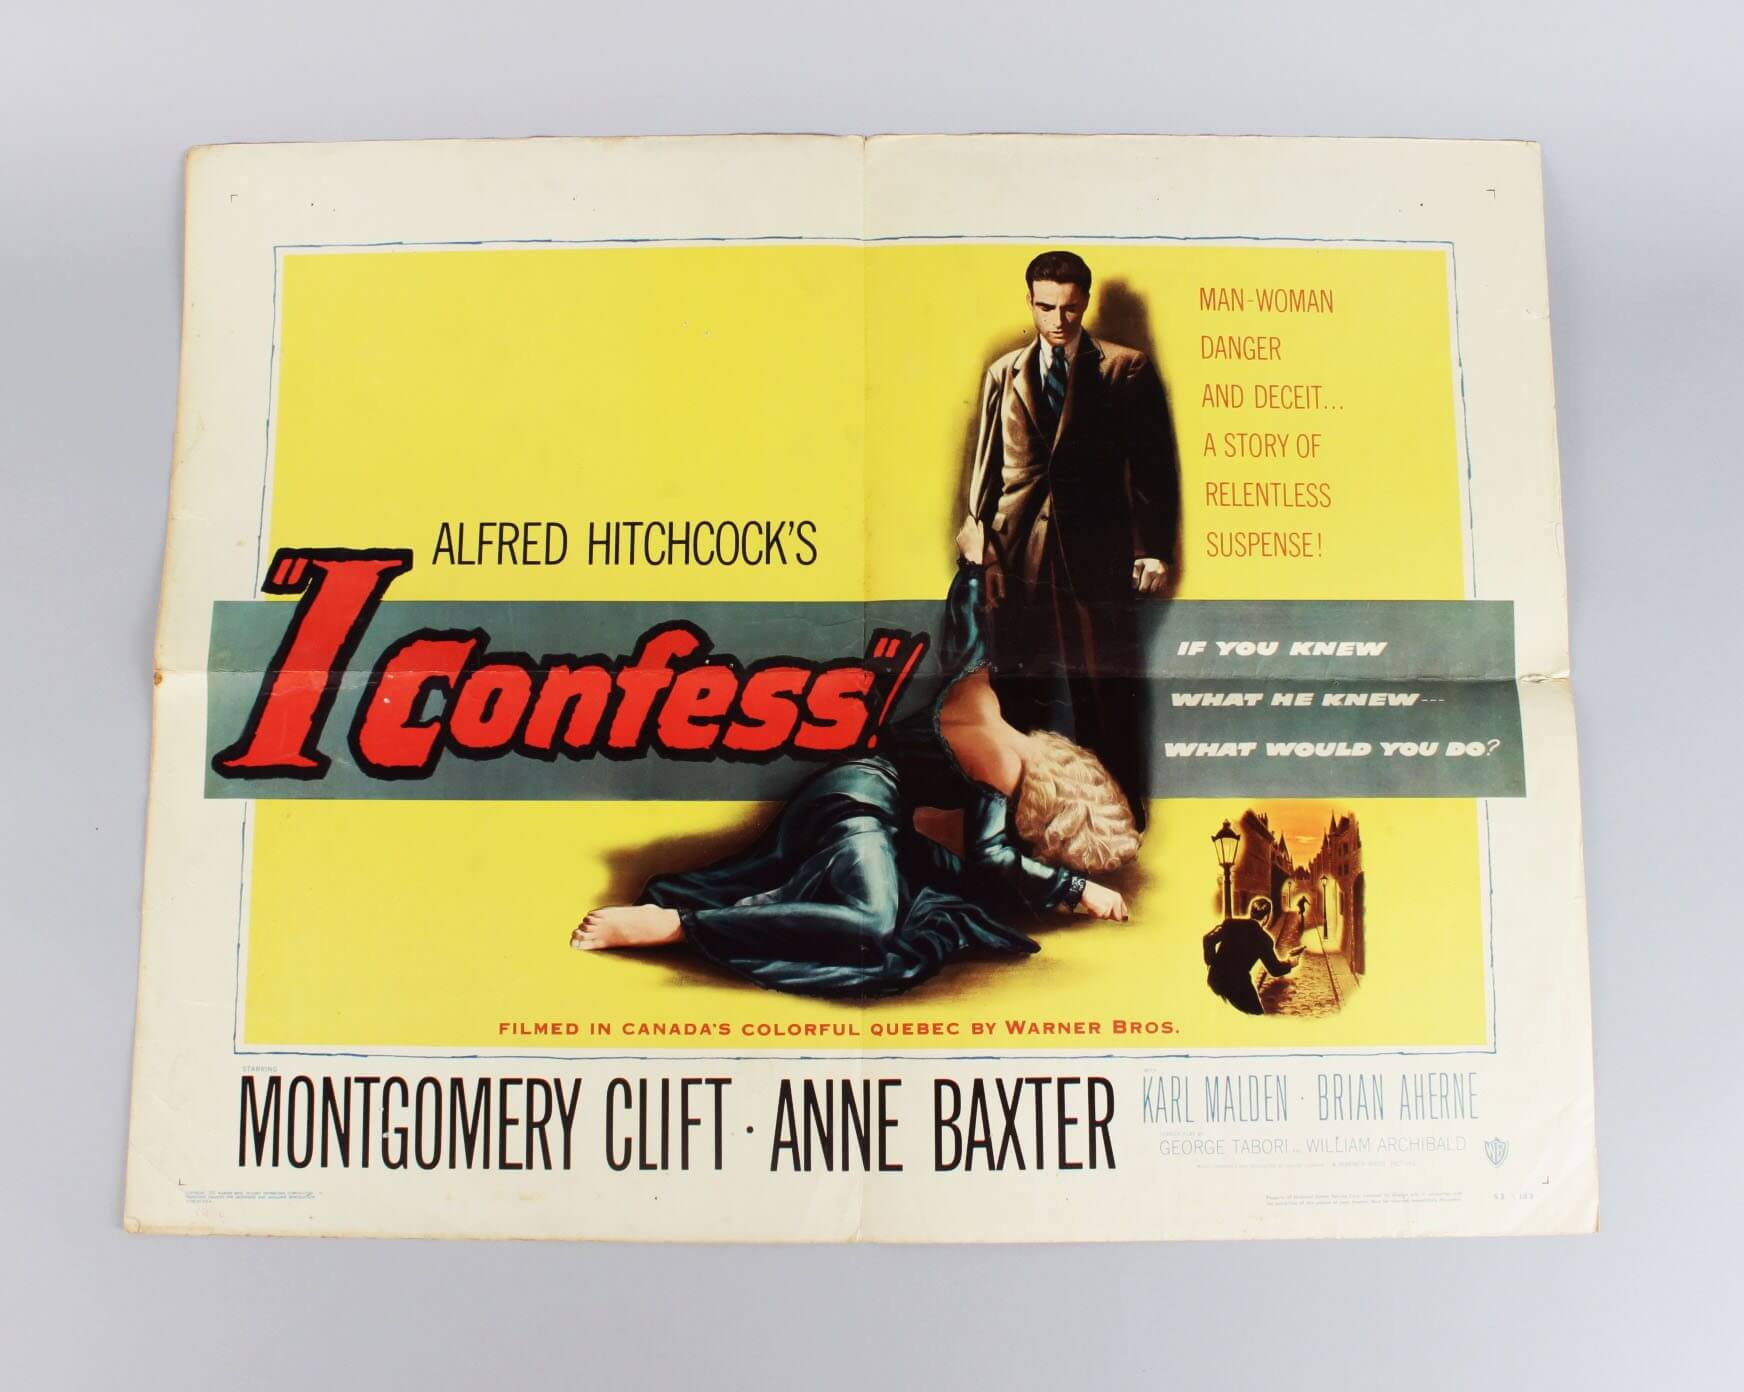 1953 - I Confess Half Sheet 22x28 Movie Film Poster - Alfred Hitchcock, Montgomery Clift, Anne Baxter etc.